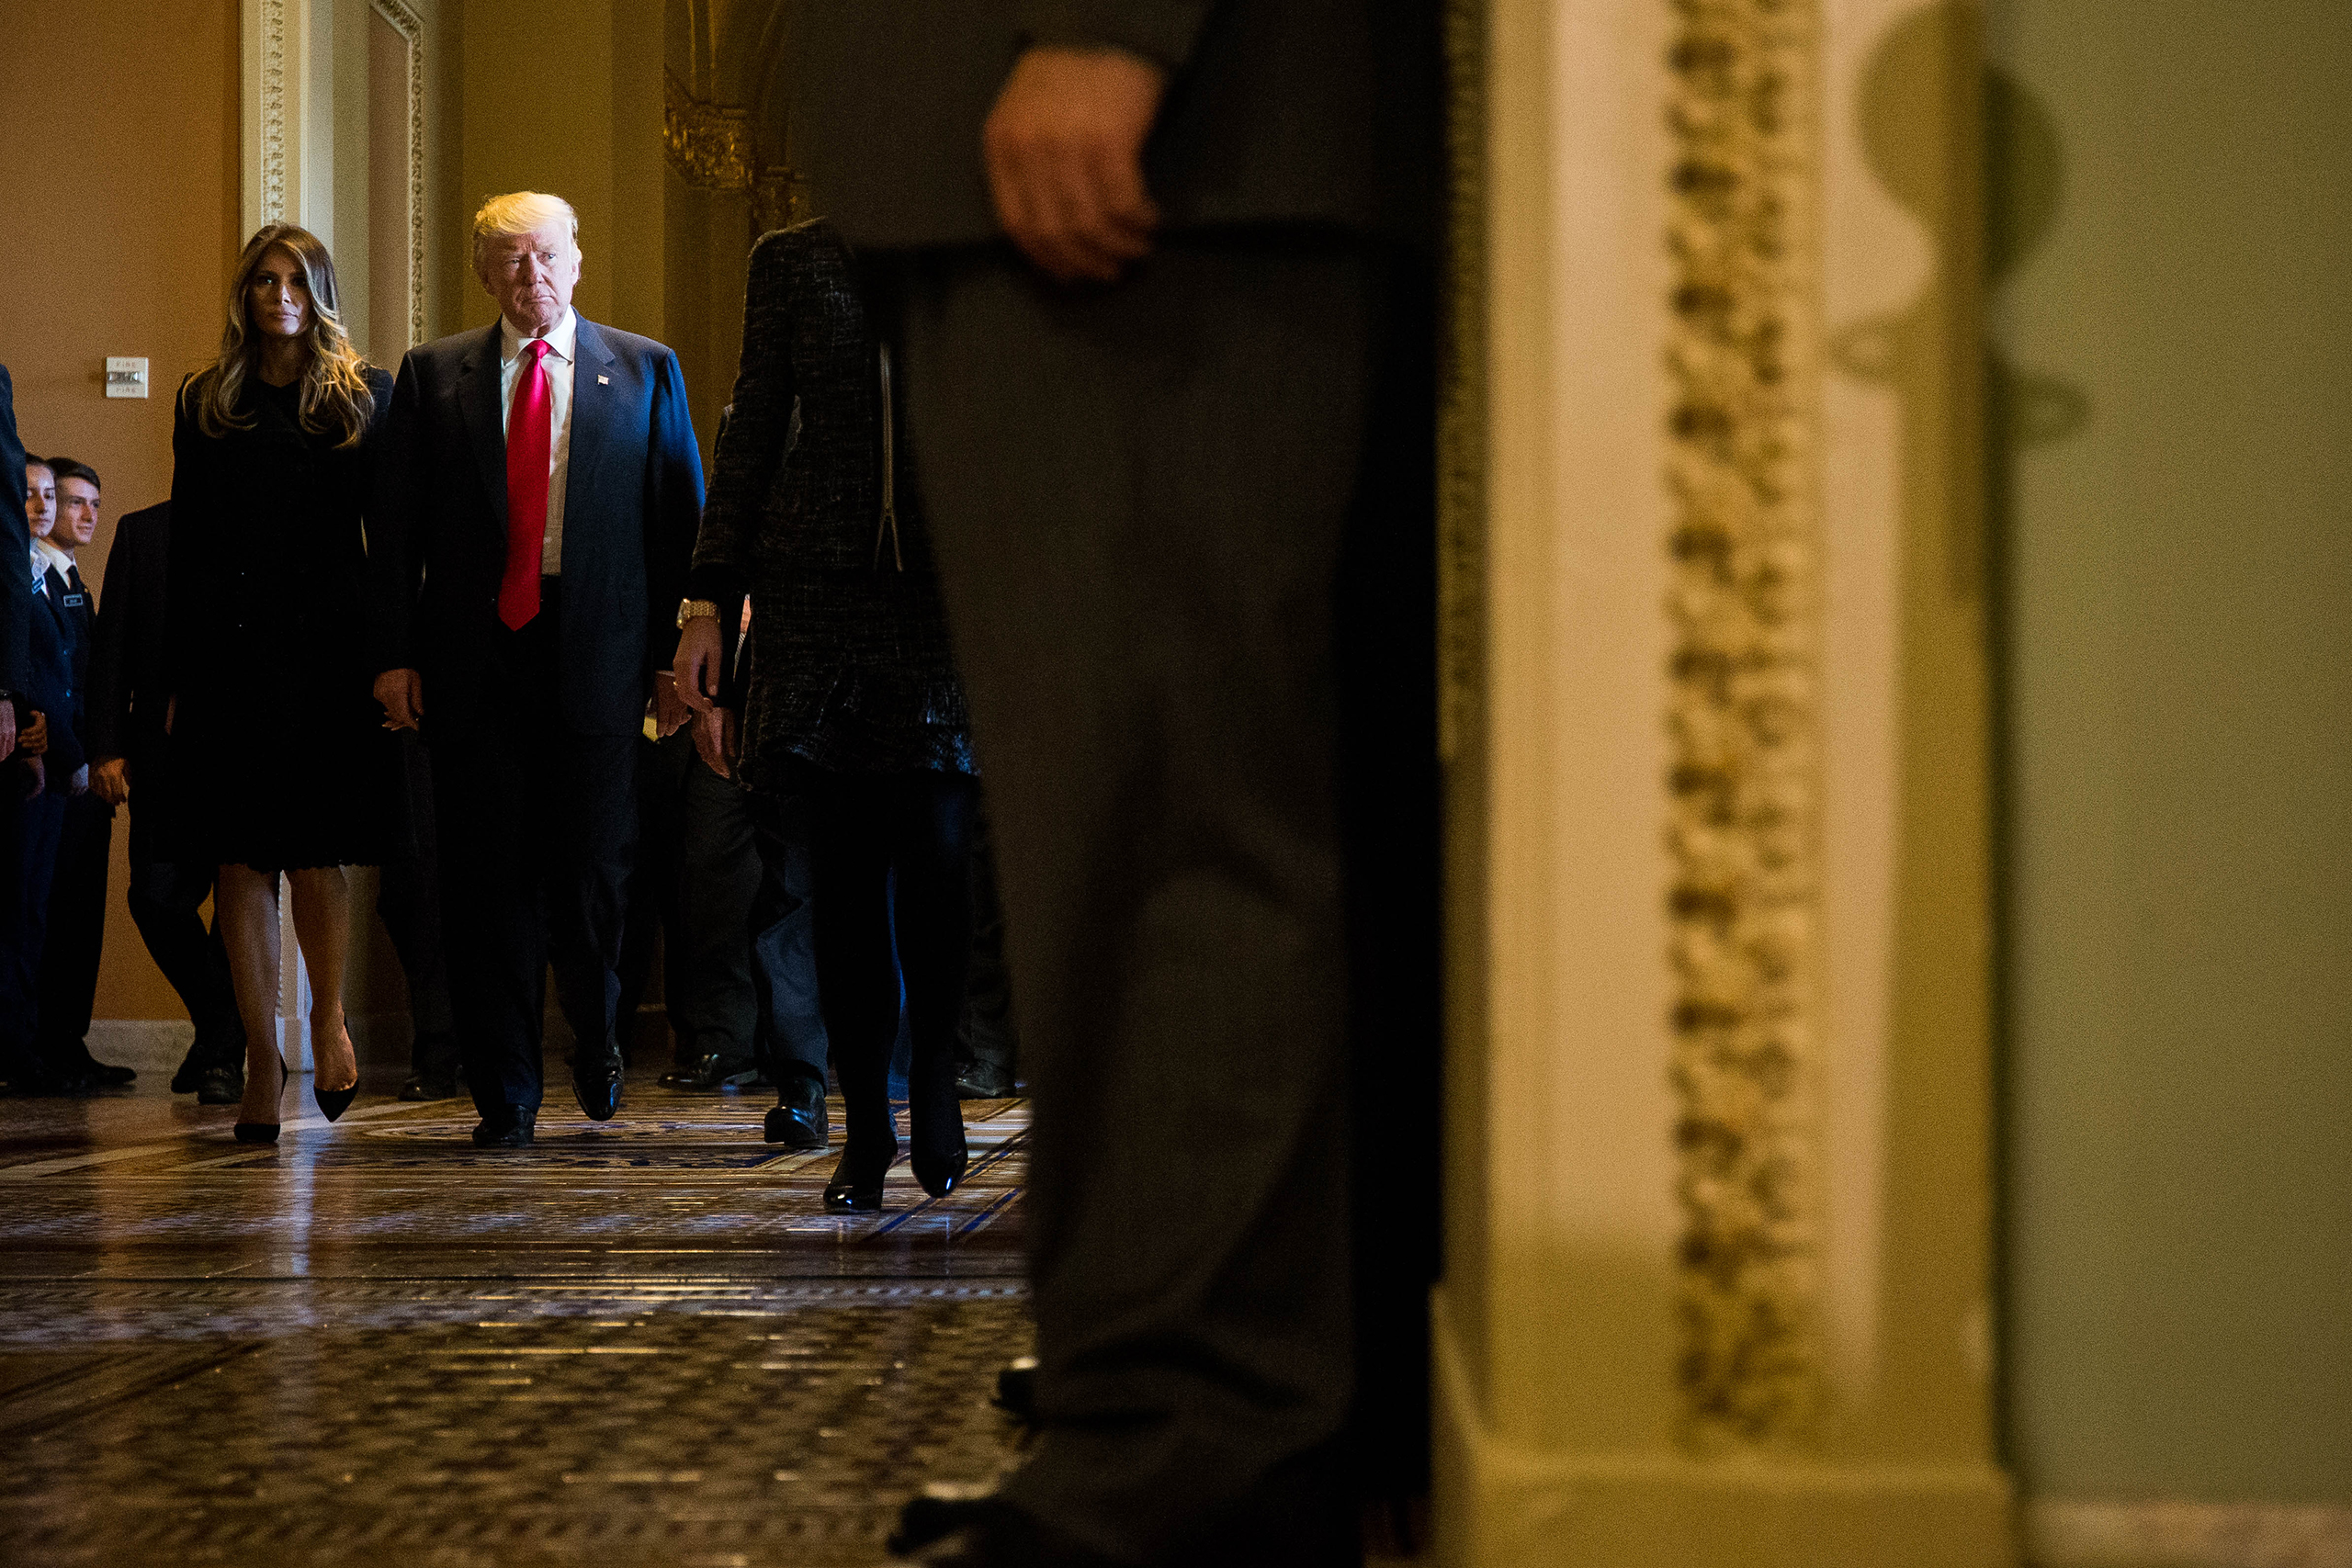 Donald Trump along with his wife Melania Trump leave a meeting with Senate Majority Leader Mitch McConnell at the U.S. Capitol on Nov.10, 2016 in Washington, DC.